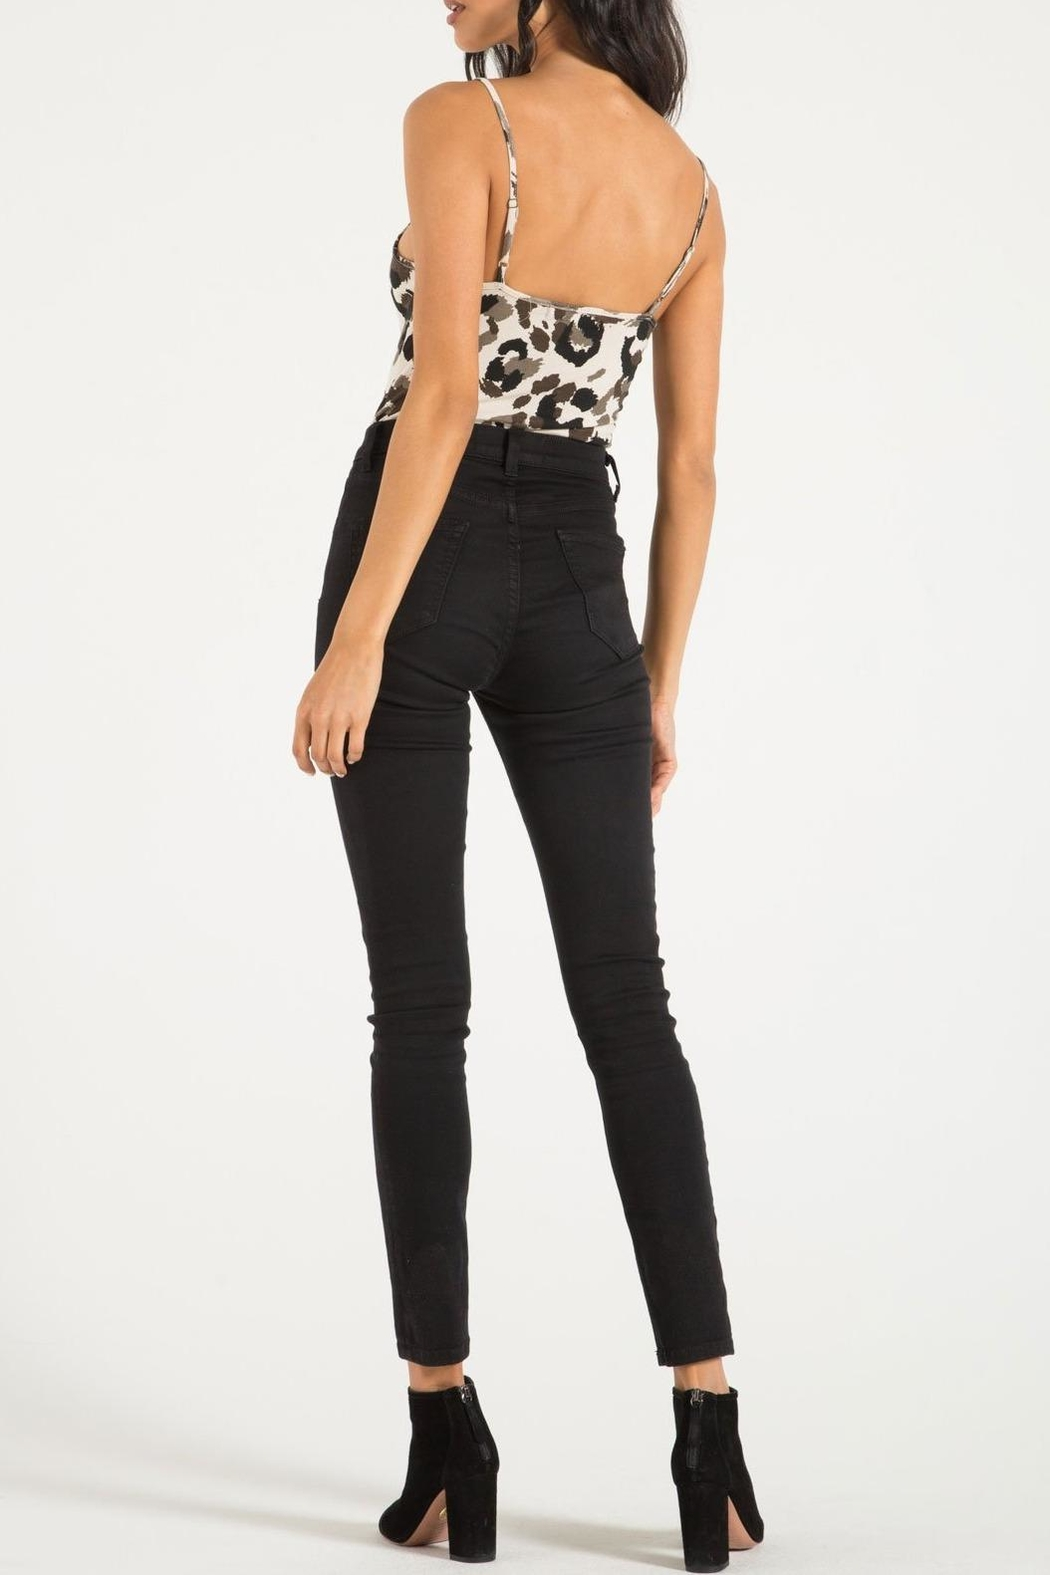 n:PHILANTHROPY Bolt Bodysuit - Side Cropped Image